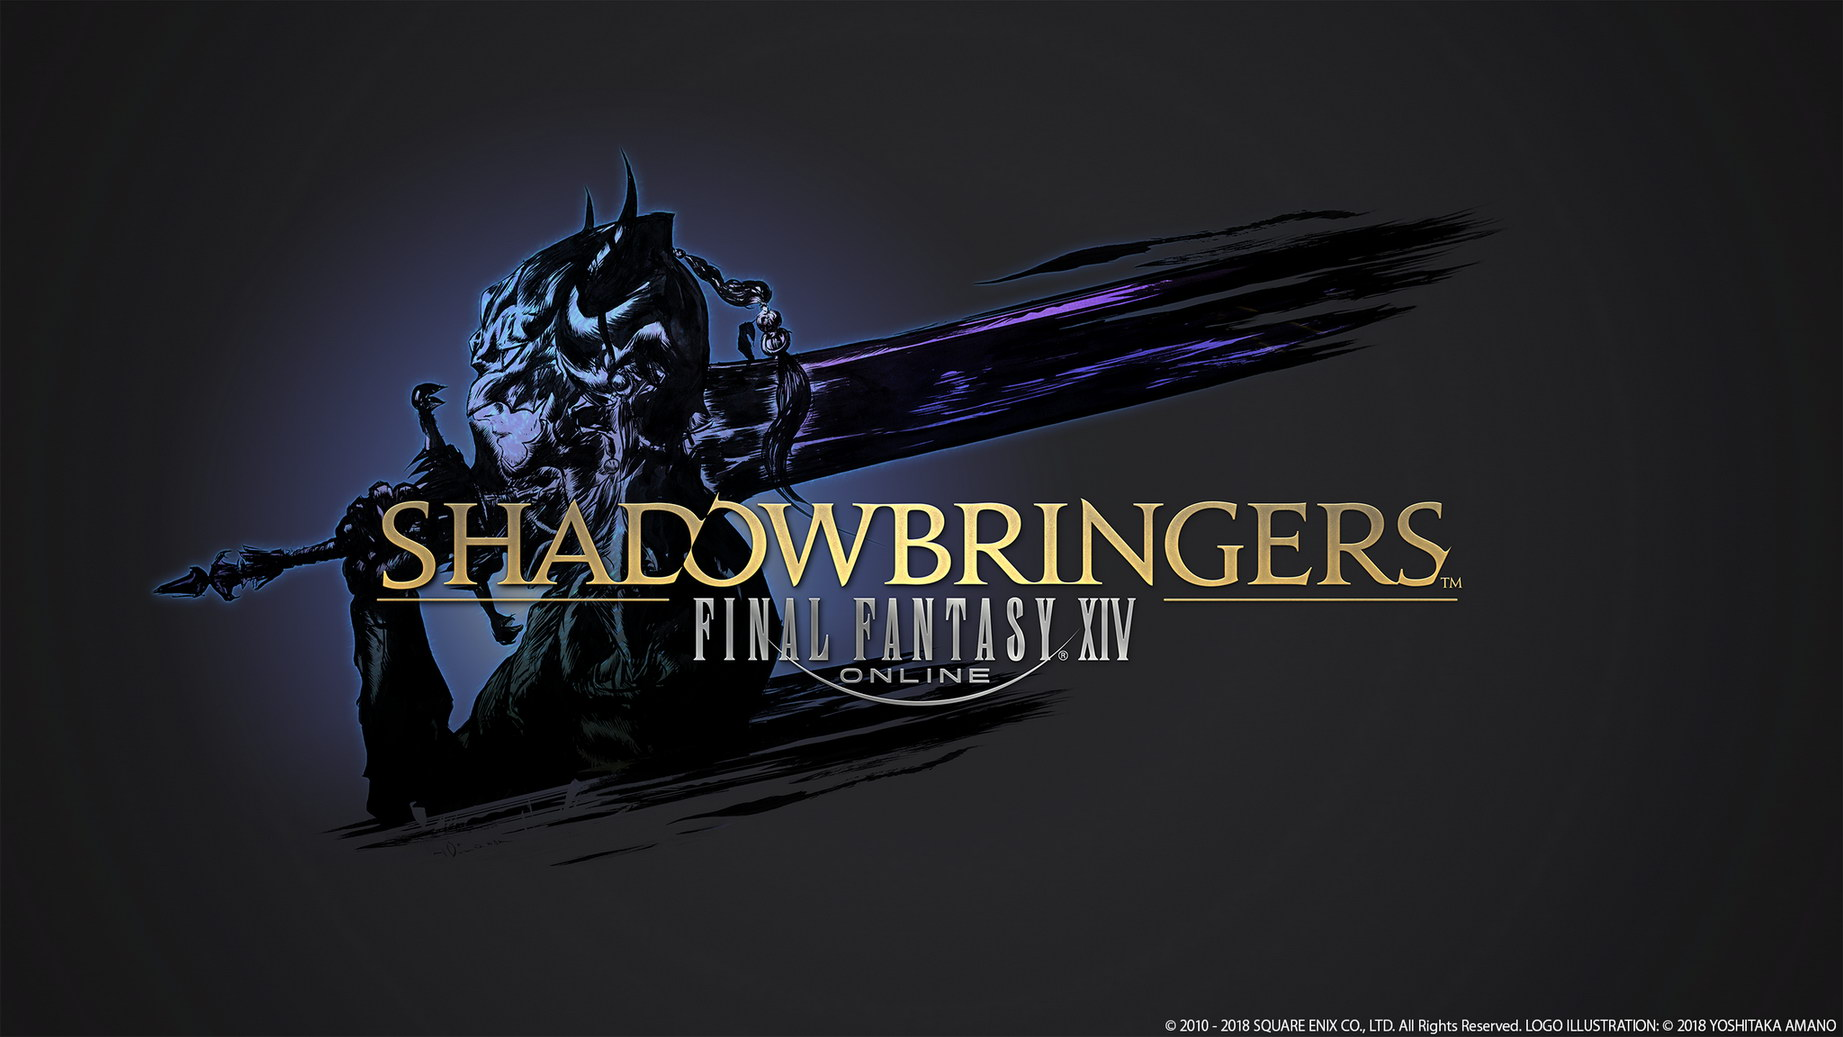 Final Fantasy XIV Shadowbringers